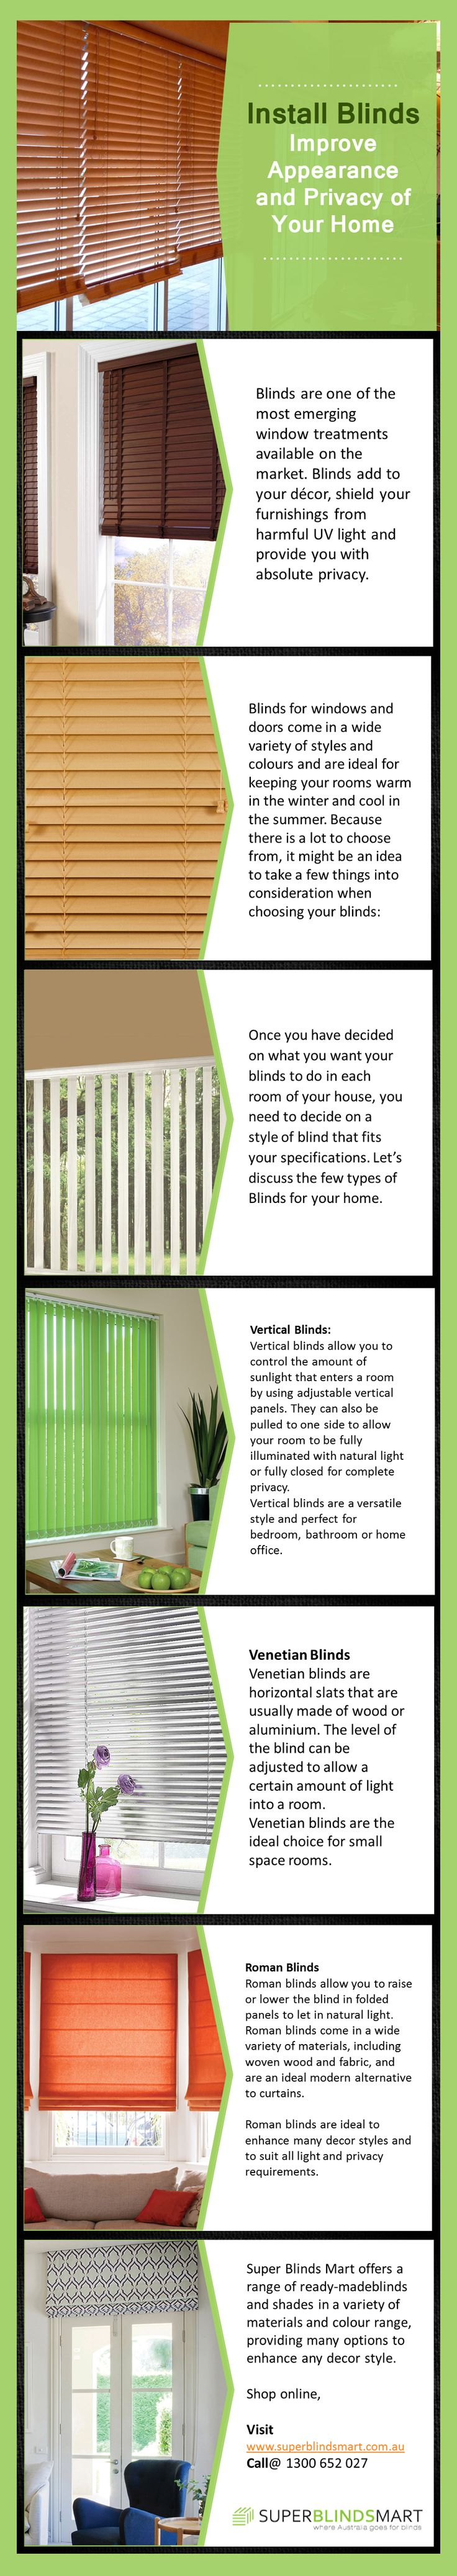 Buy Blinds Online - Super Blinds Mart in Australia  -  Get 10% Off All Venetian Blinds - SPECIAL ON NOW! At Super Blinds Mart, you can find high quality blinds/shades including Roller Blinds, Roman Blinds, and Venetian Blinds etc. that matches any decor style. Visit http://www.superblindsmart.com.au/